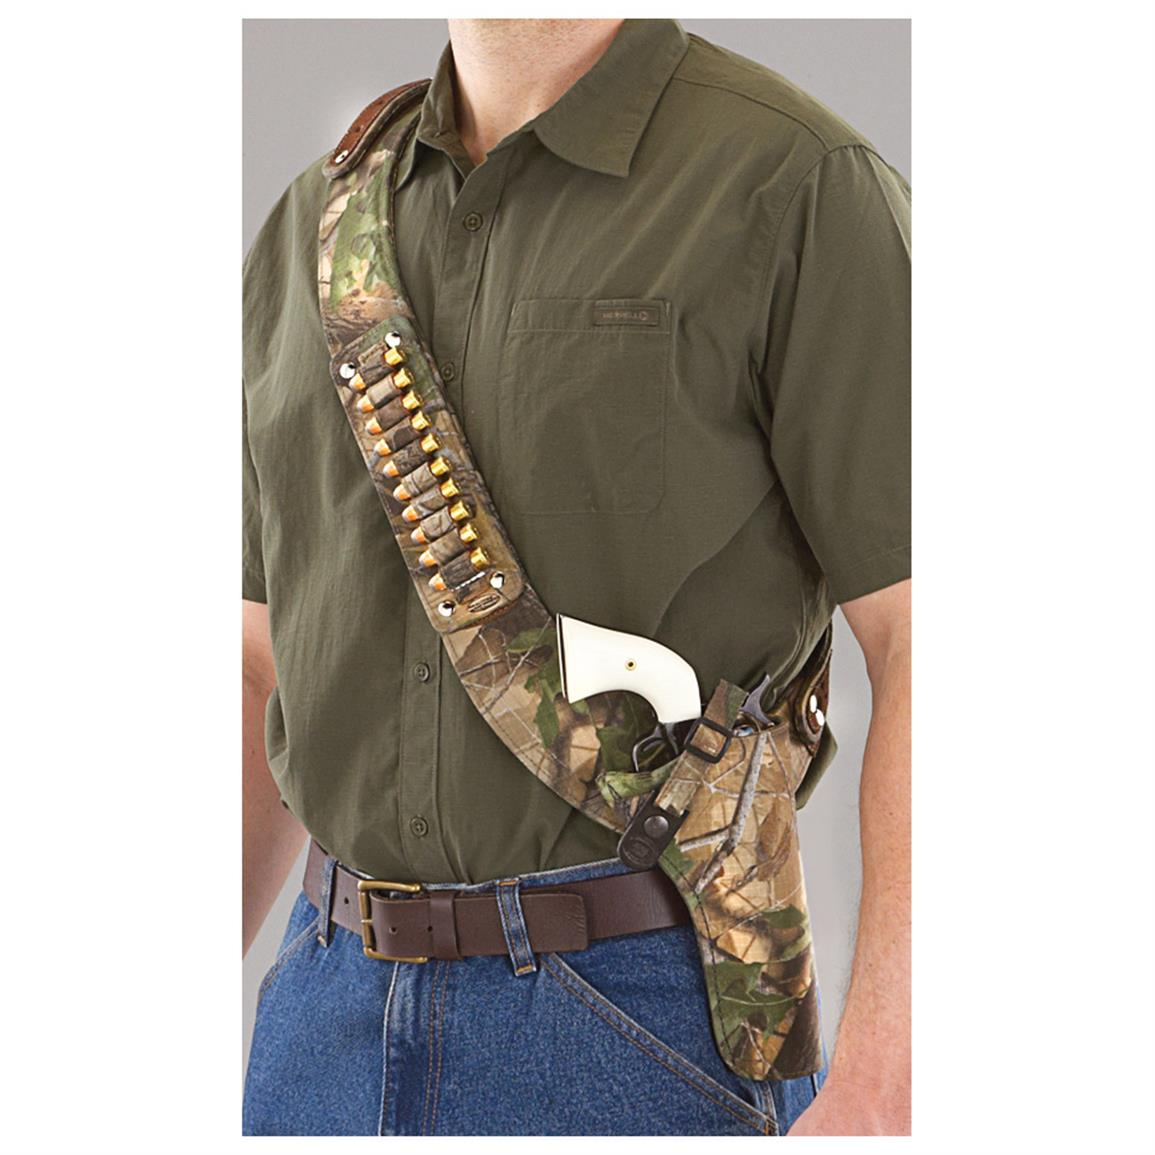 "Bandolero Shoulder Holster with Ammo Loops, Size 4"", Fits S&W K/L Frame • Camo"